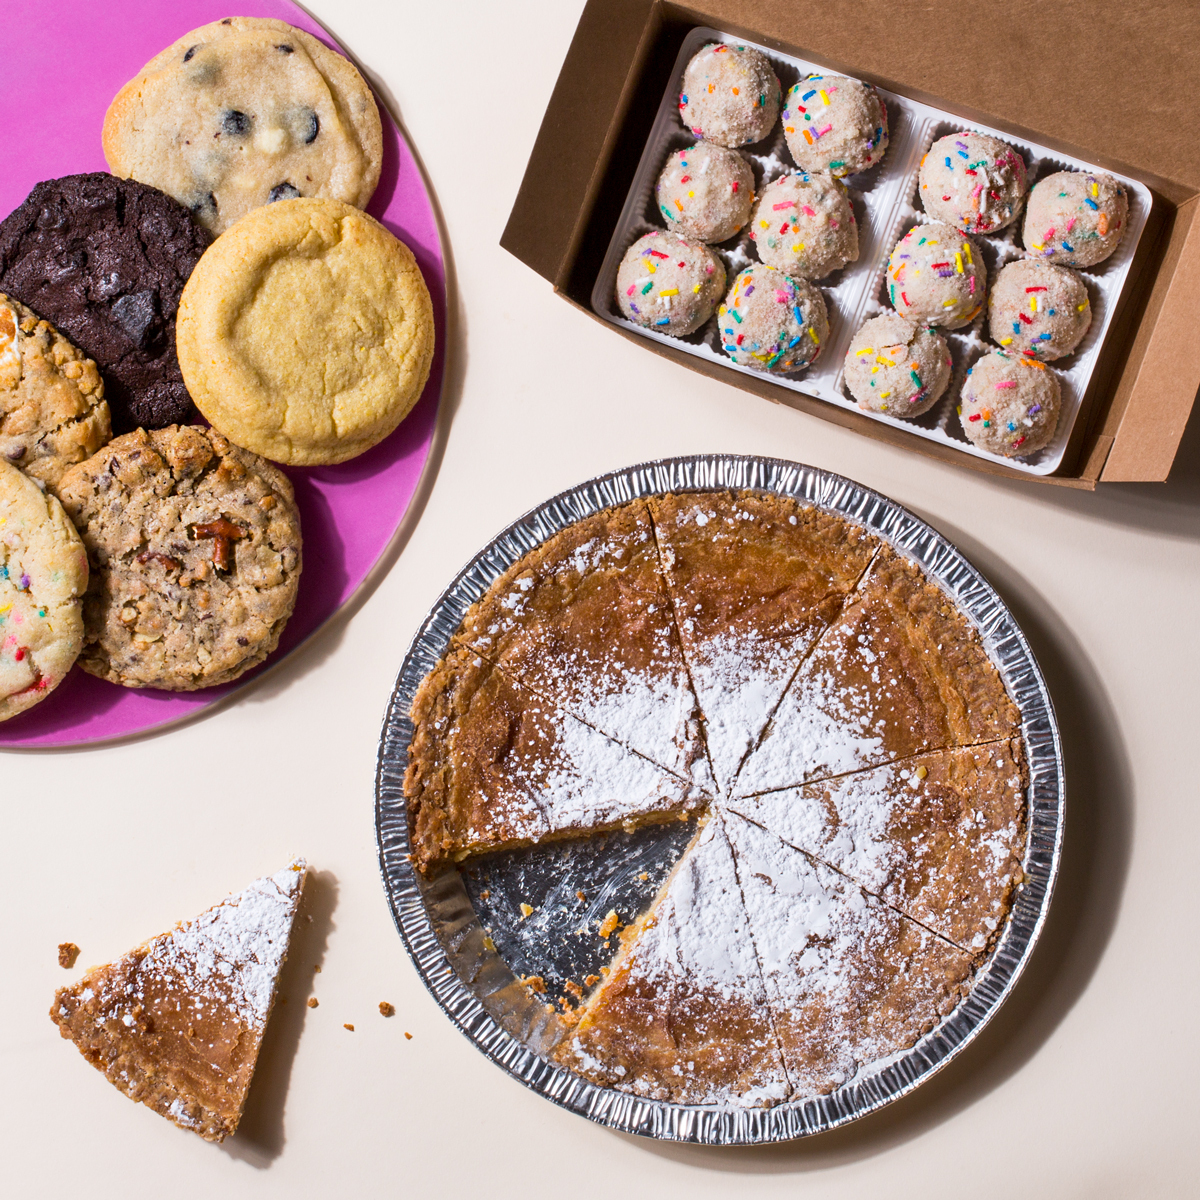 Christina Tosi could bring her Milk Bar empire (and Crack Pie) to Chicago